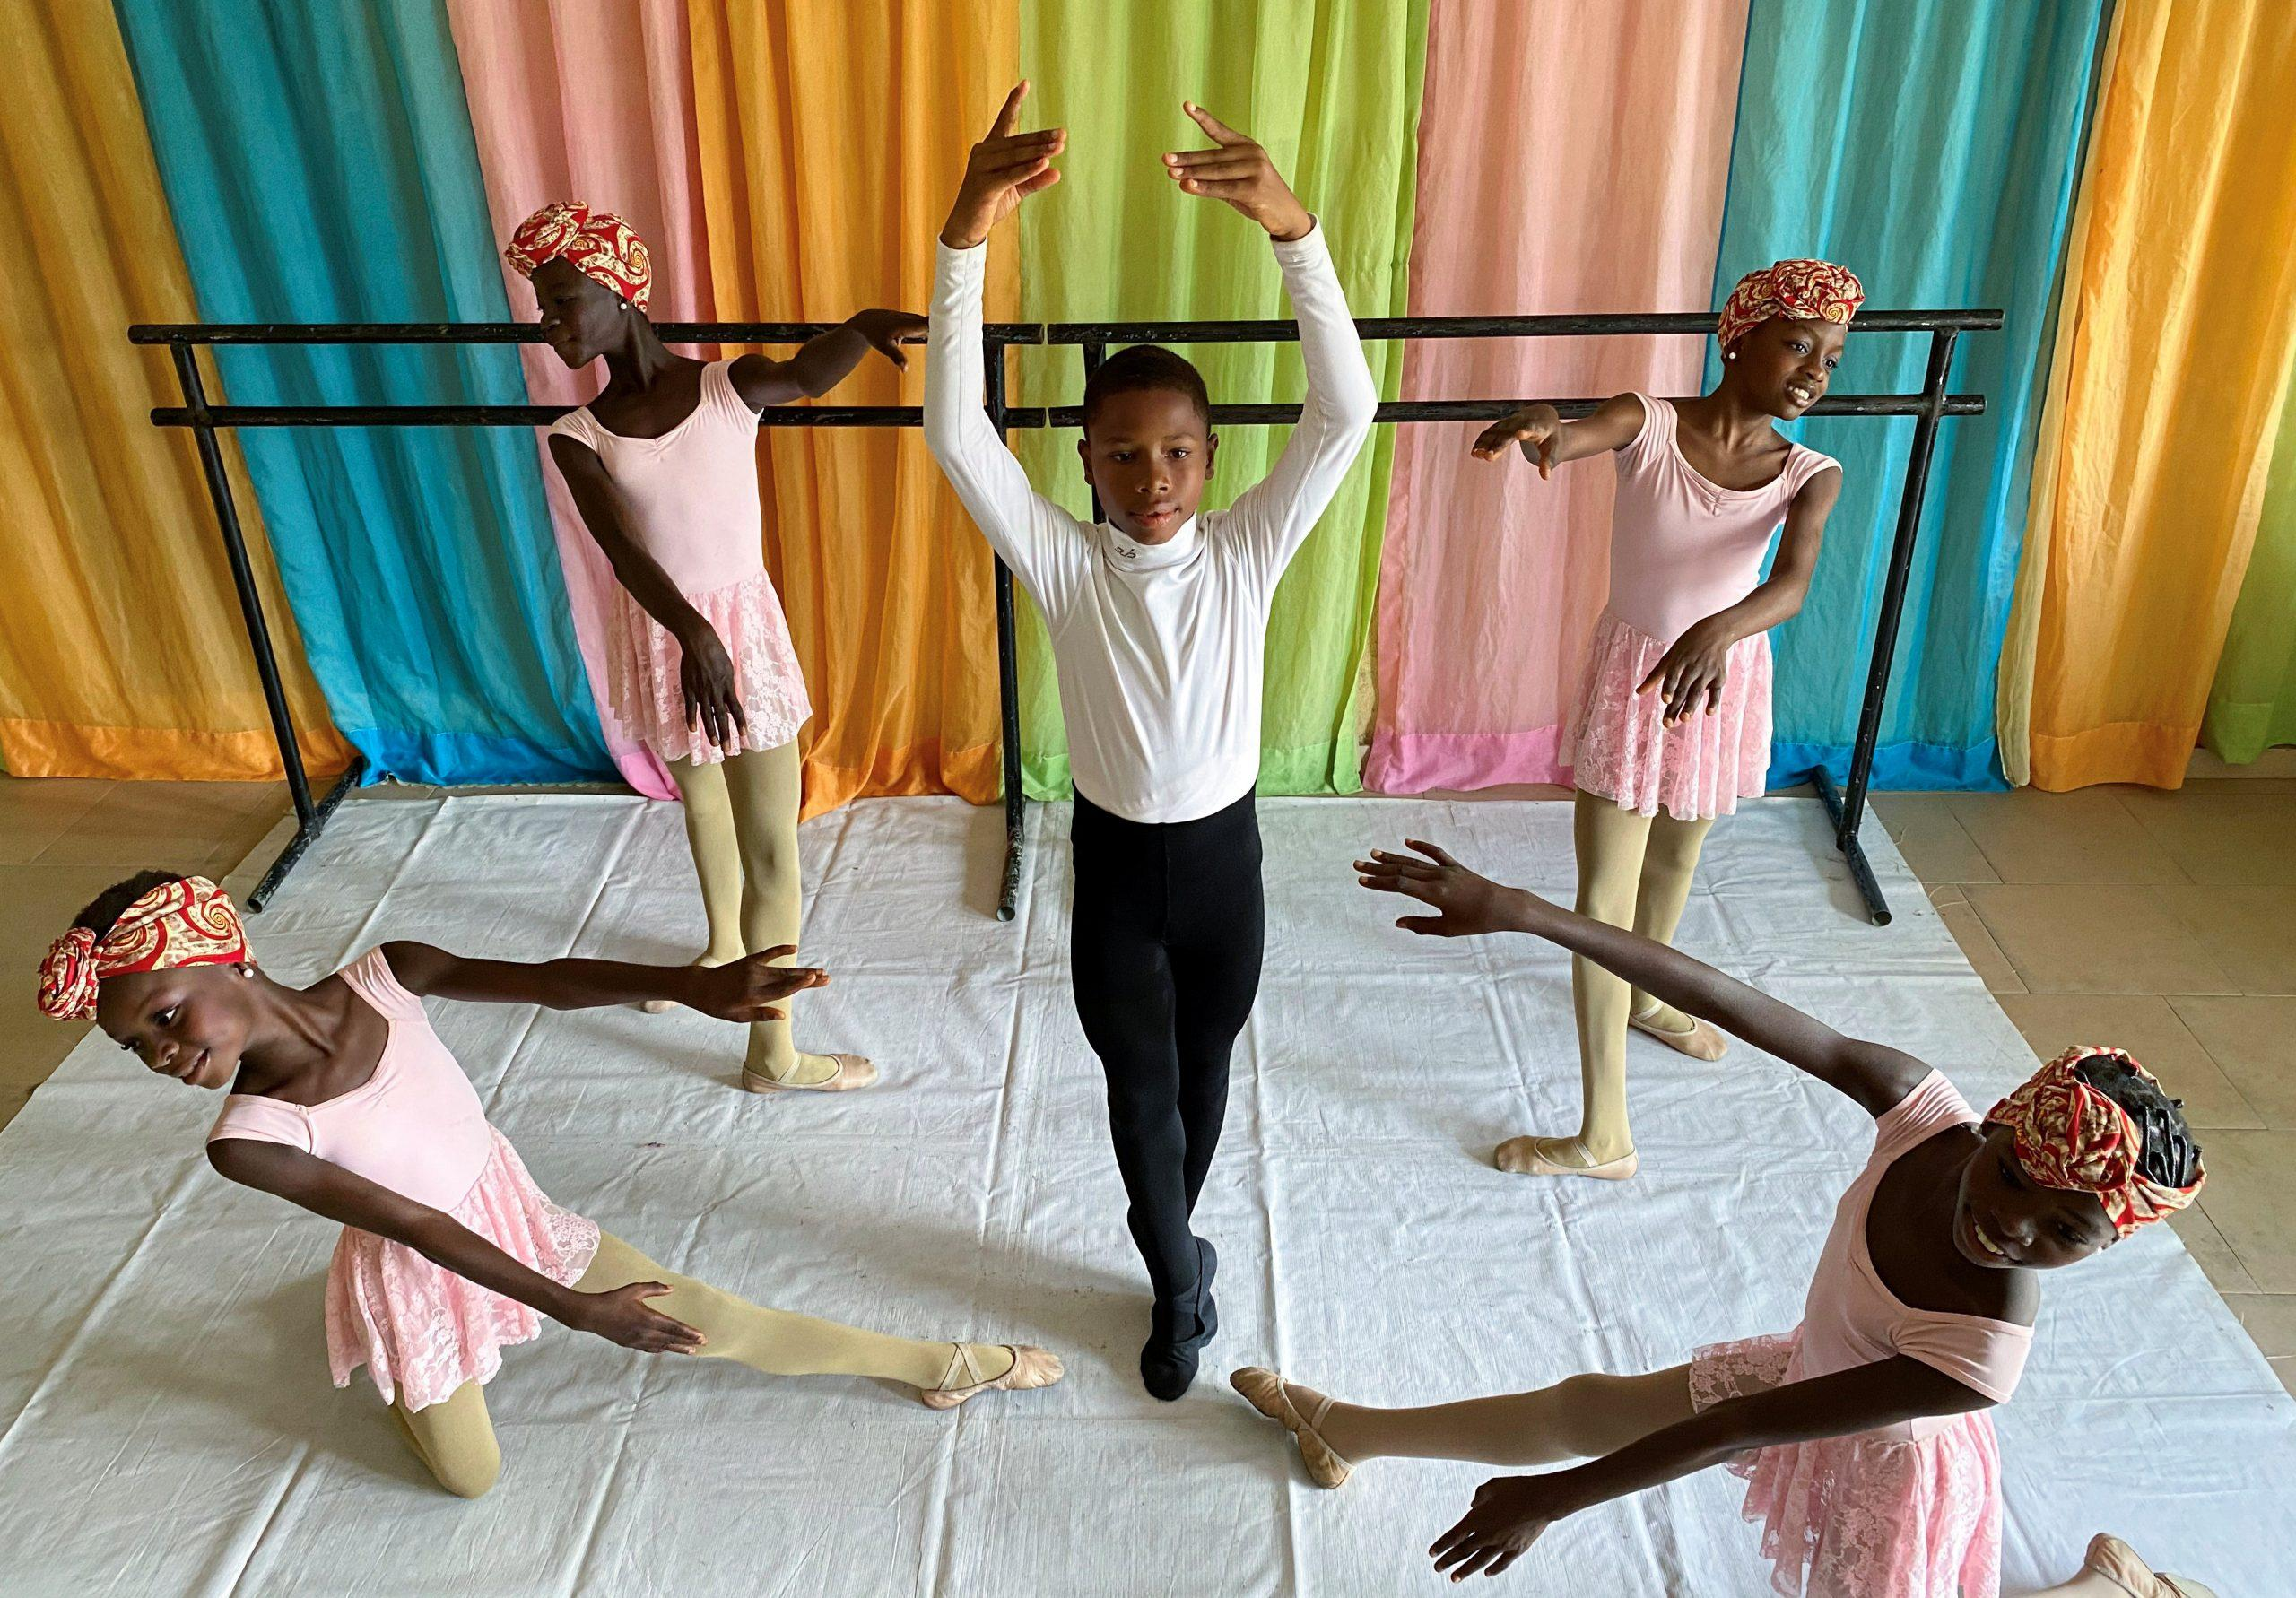 Leap of faith: Nigerian boy captivates the world with his ballet - GLOBAL HEROES MAGAZINE